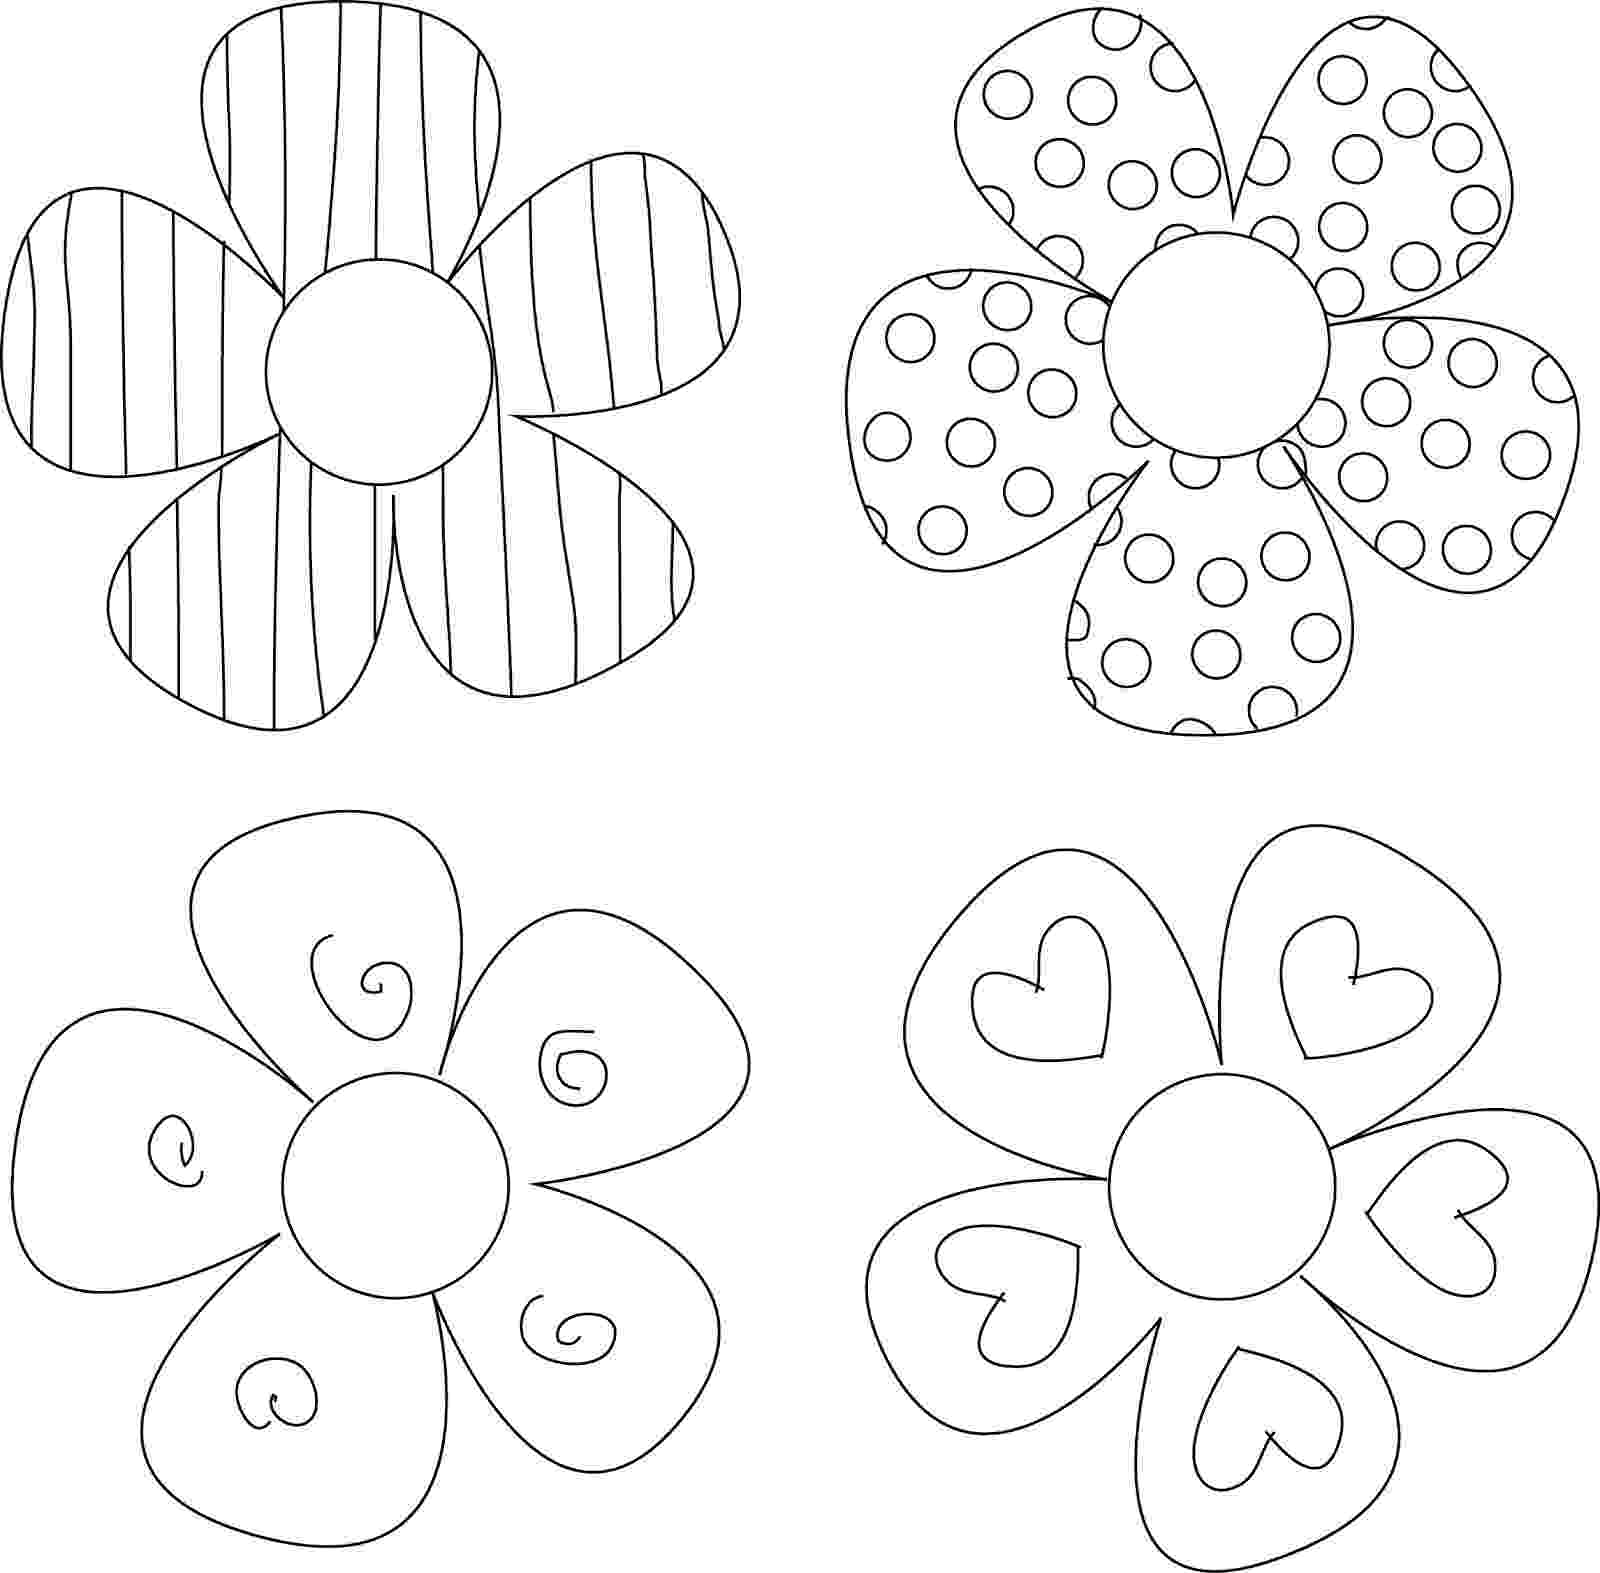 printable flower patterns to color flower pattern coloring page free printable coloring pages to patterns flower printable color